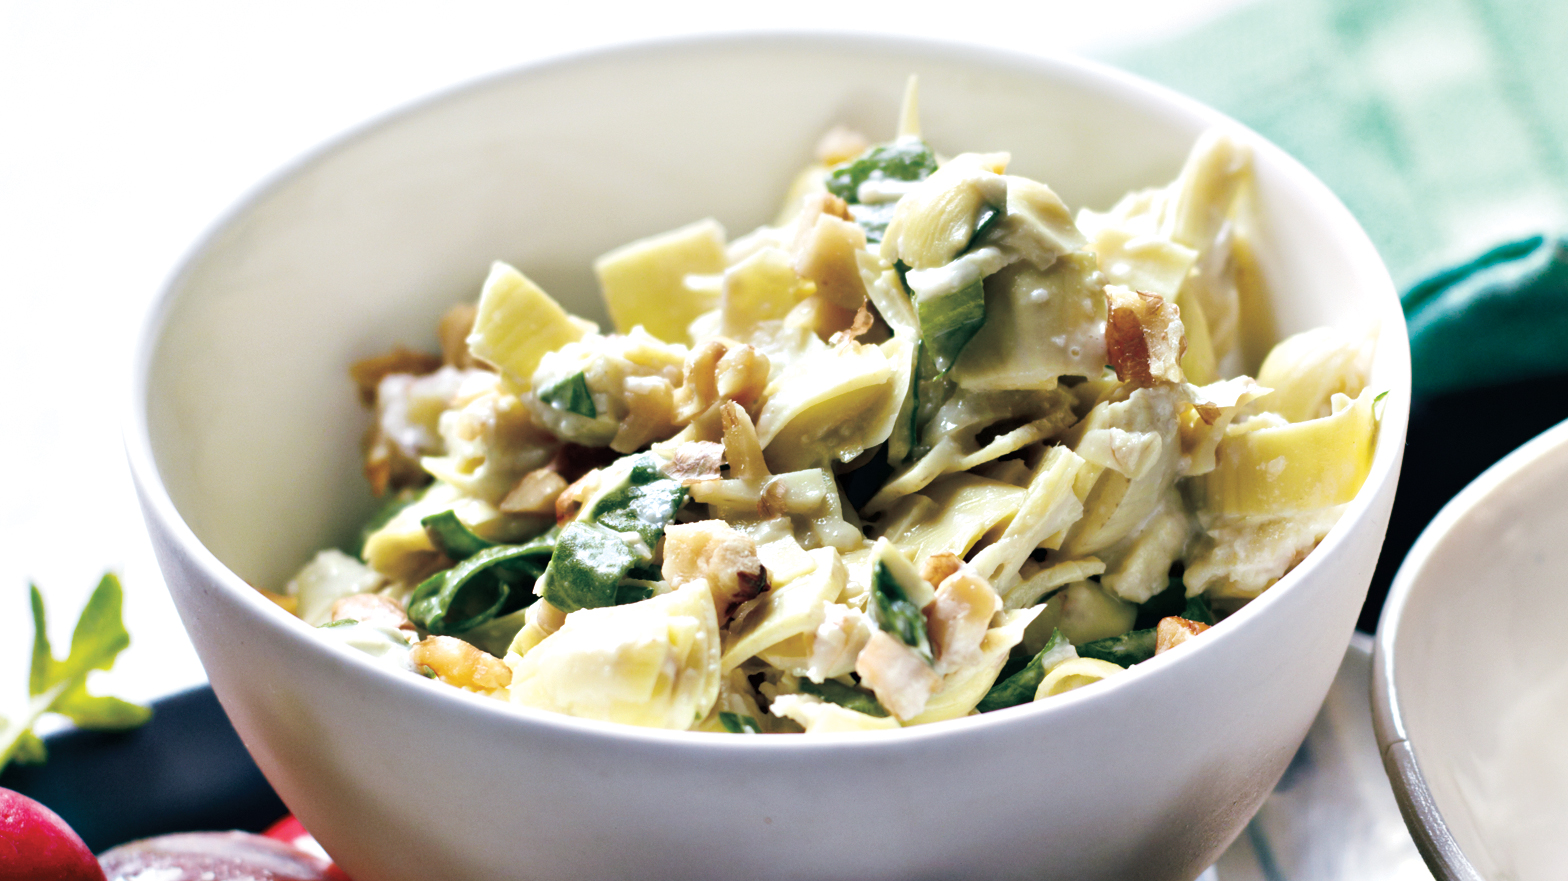 Artichoke and Spinach Relish With Walnuts